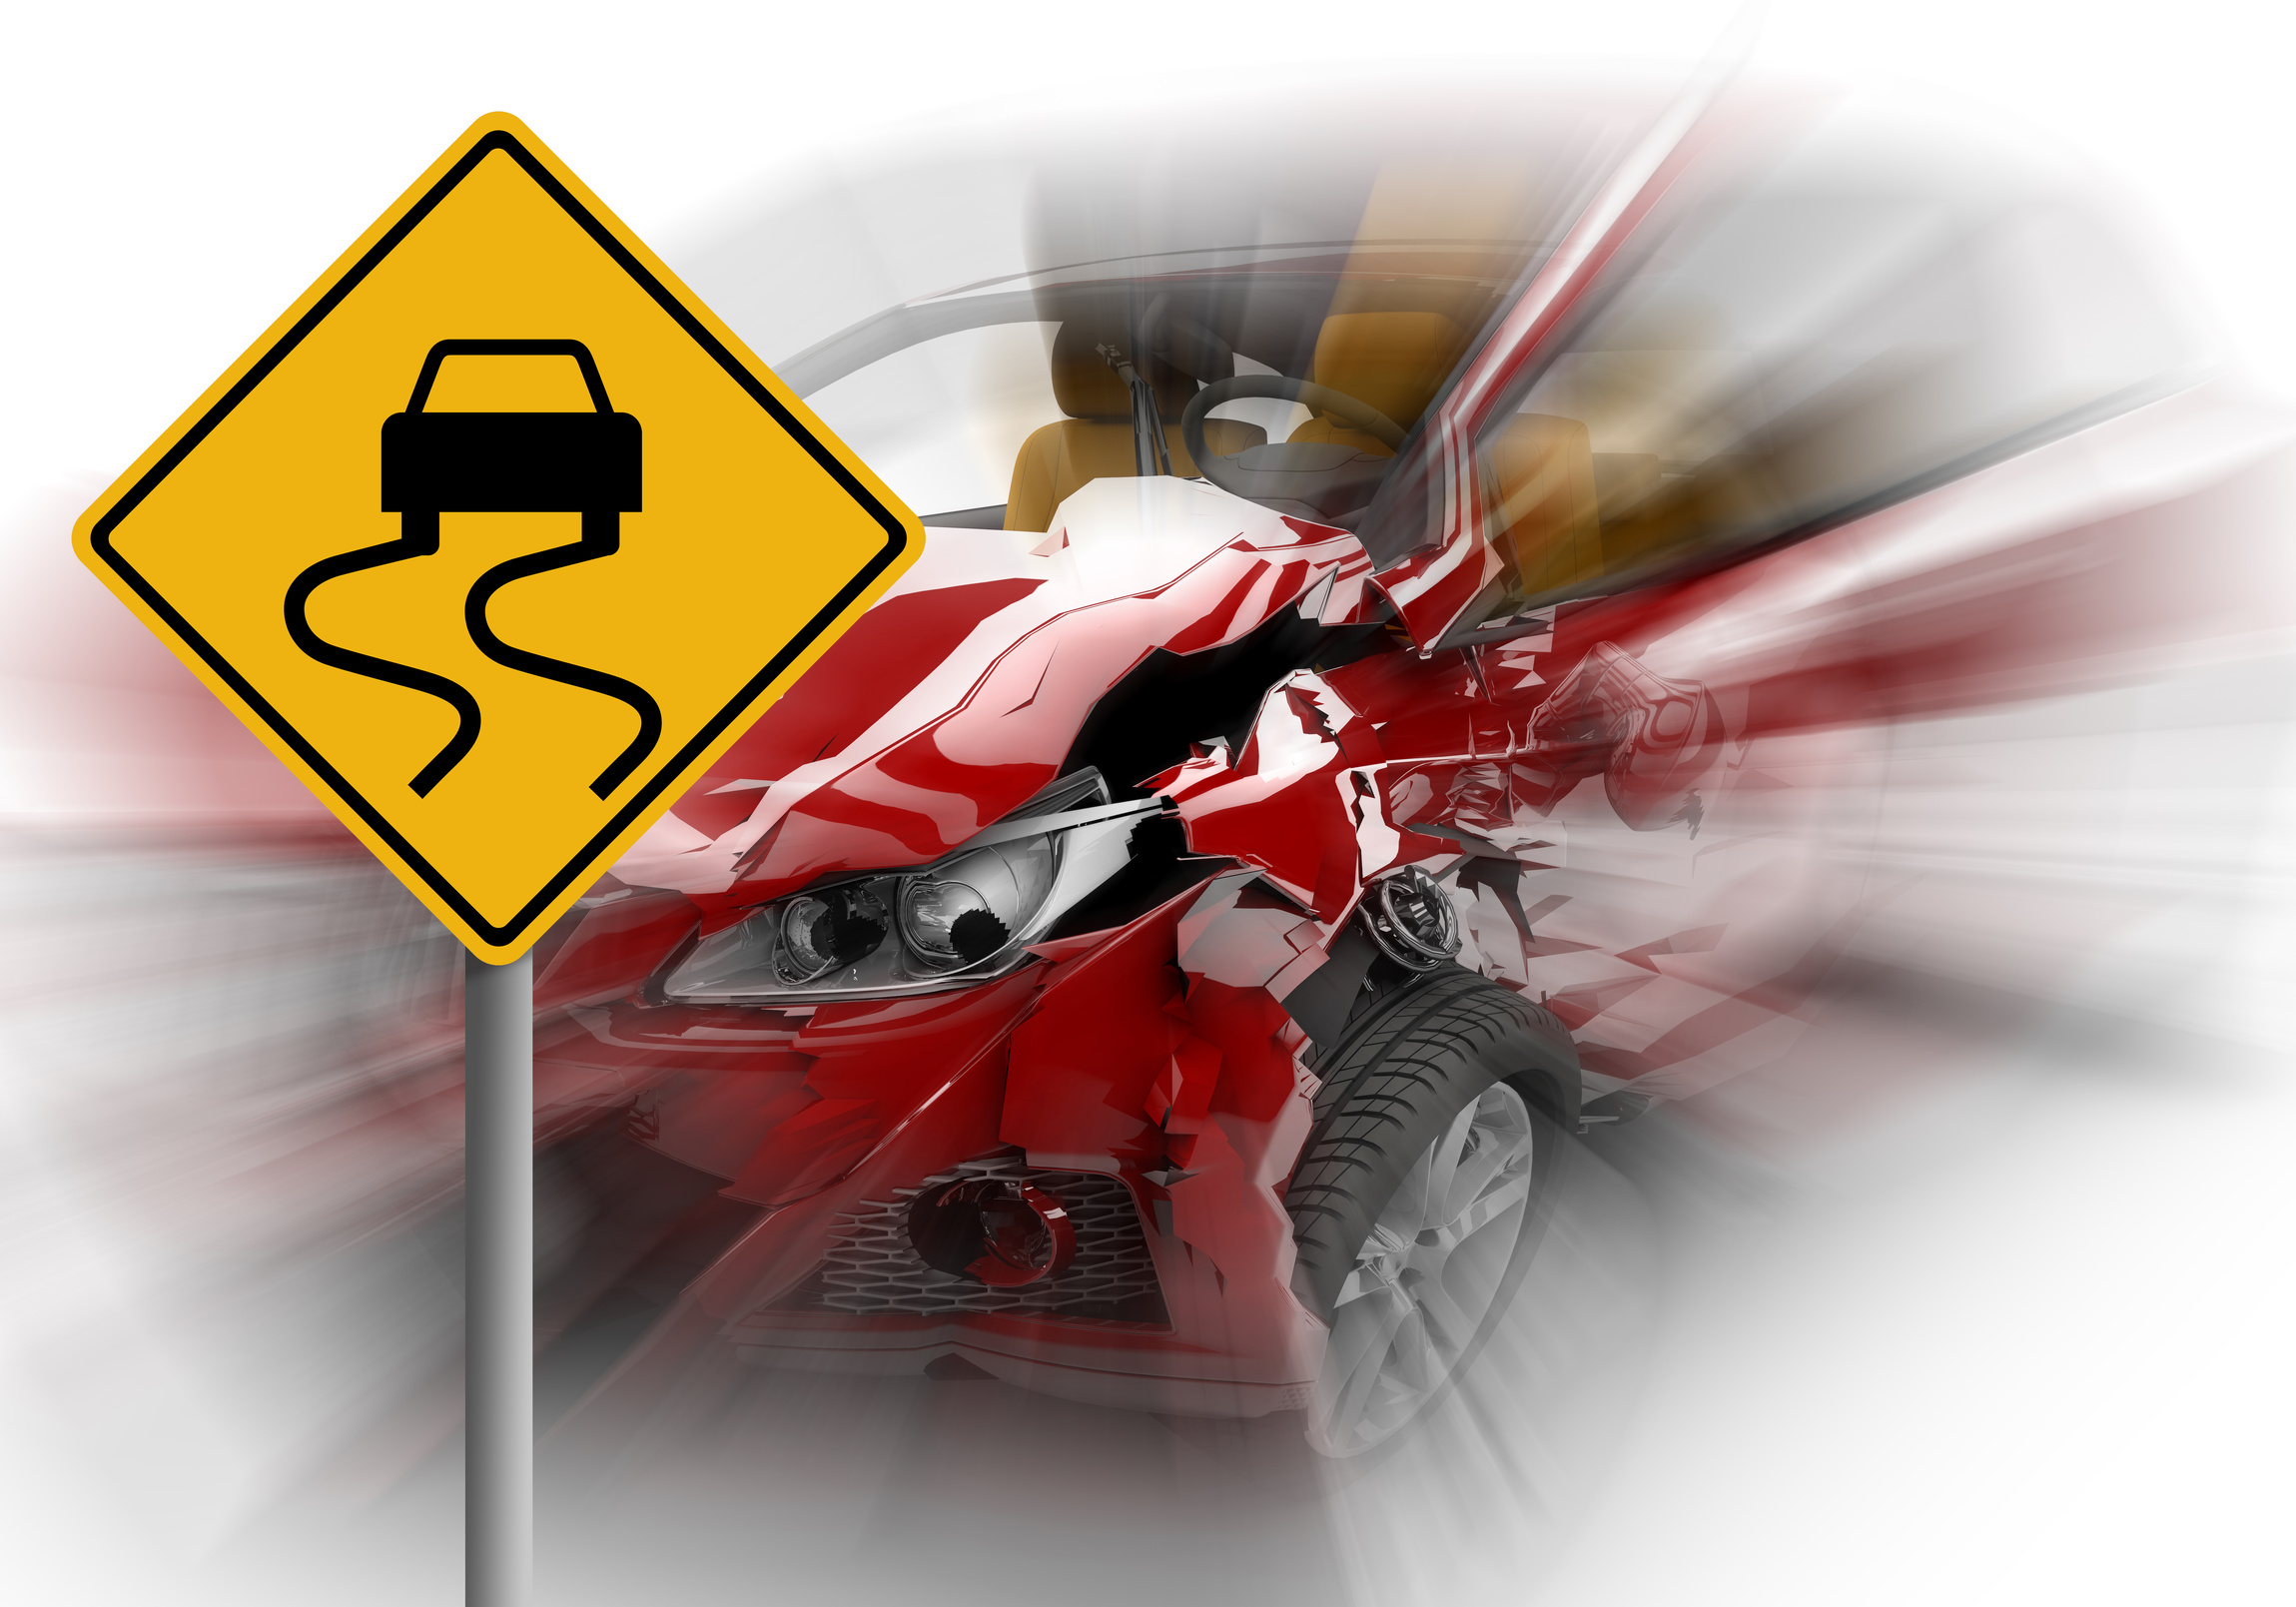 Zoom on a red car accident with danger yellow sign